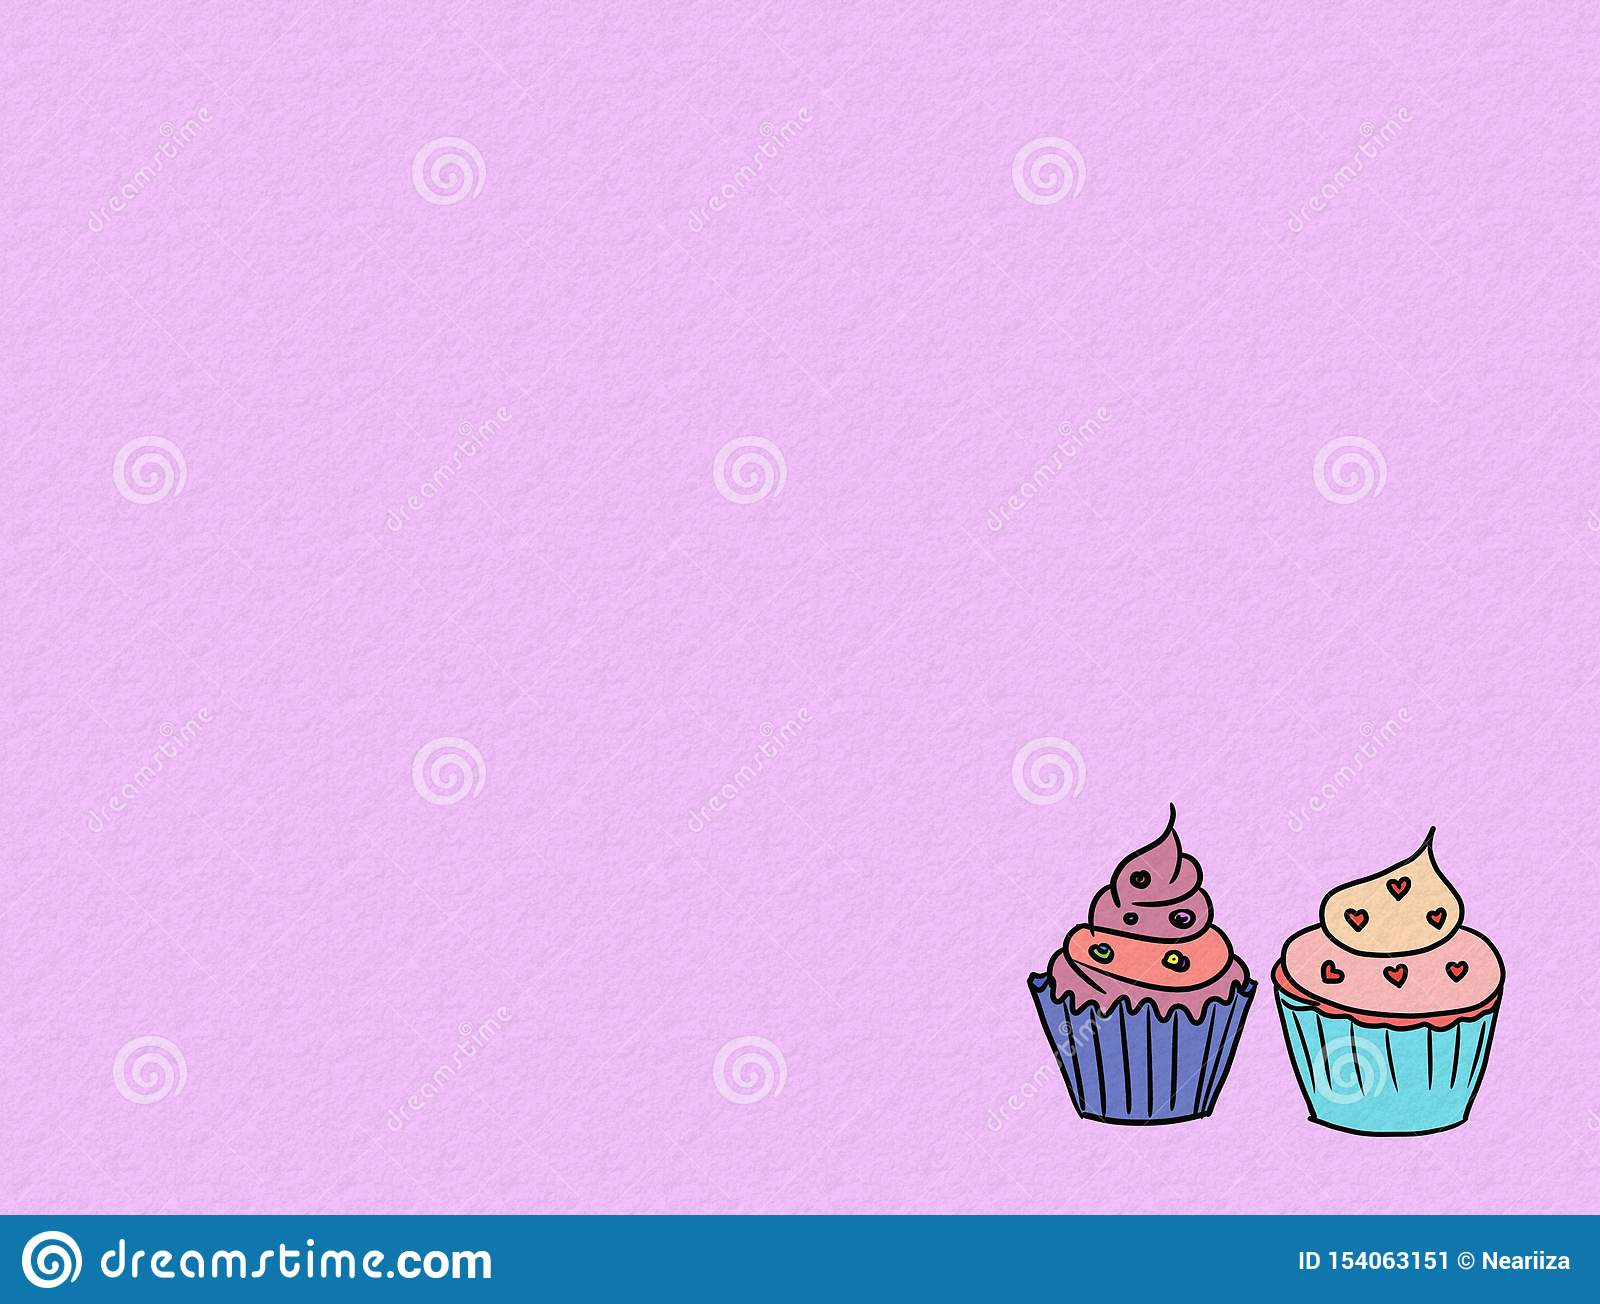 Hand drawn cupcakes on color background, sweet bakery used for desktop wallpaper or website design.-image